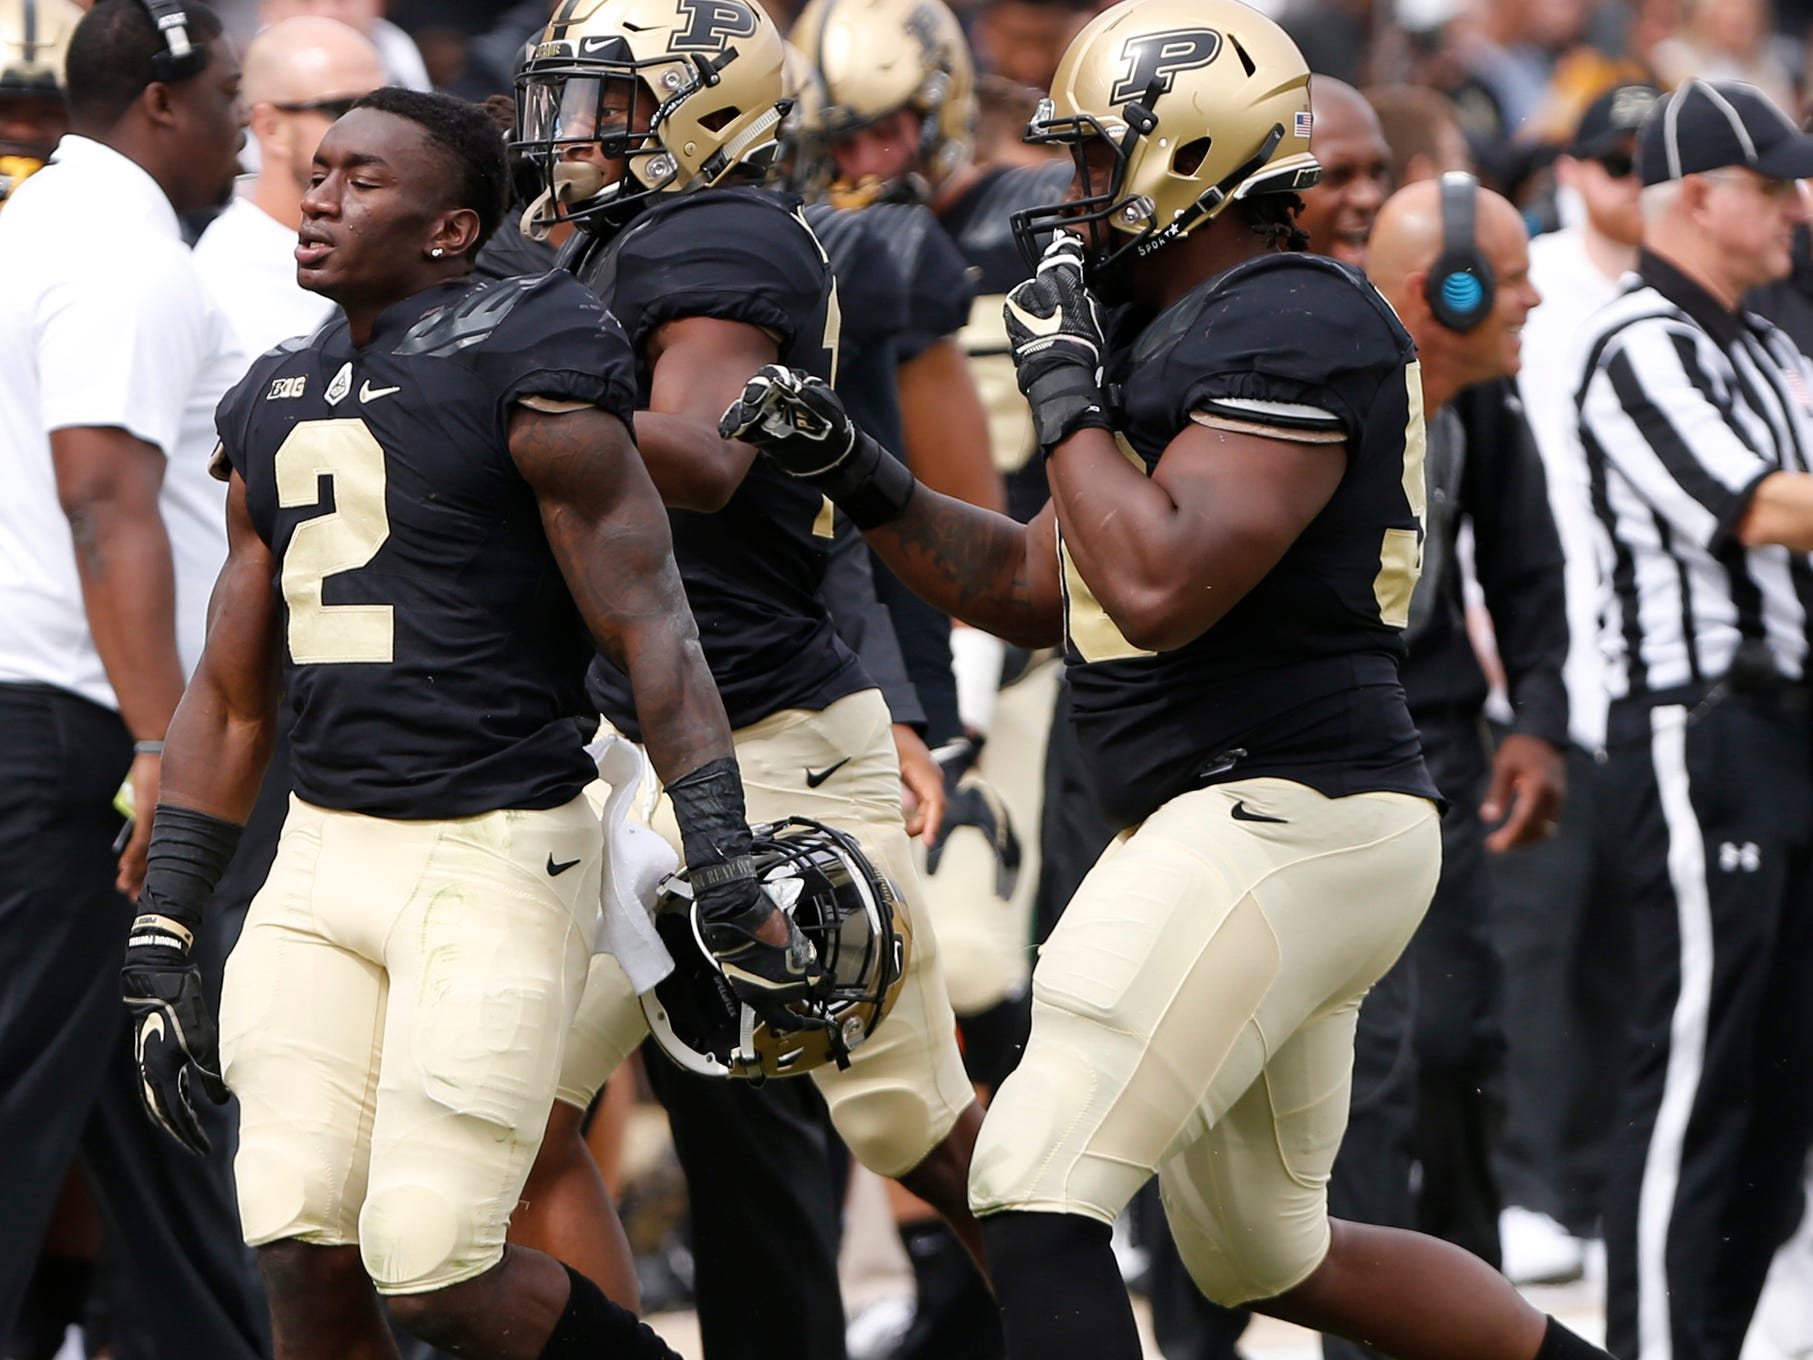 Kenneth Major, left, of Purdue celebrates with teammates after his second half interception against Boston College Saturday, September 22, 2018, in Ross-Ade Stadium. Purdue defeated Boston College 30-13.